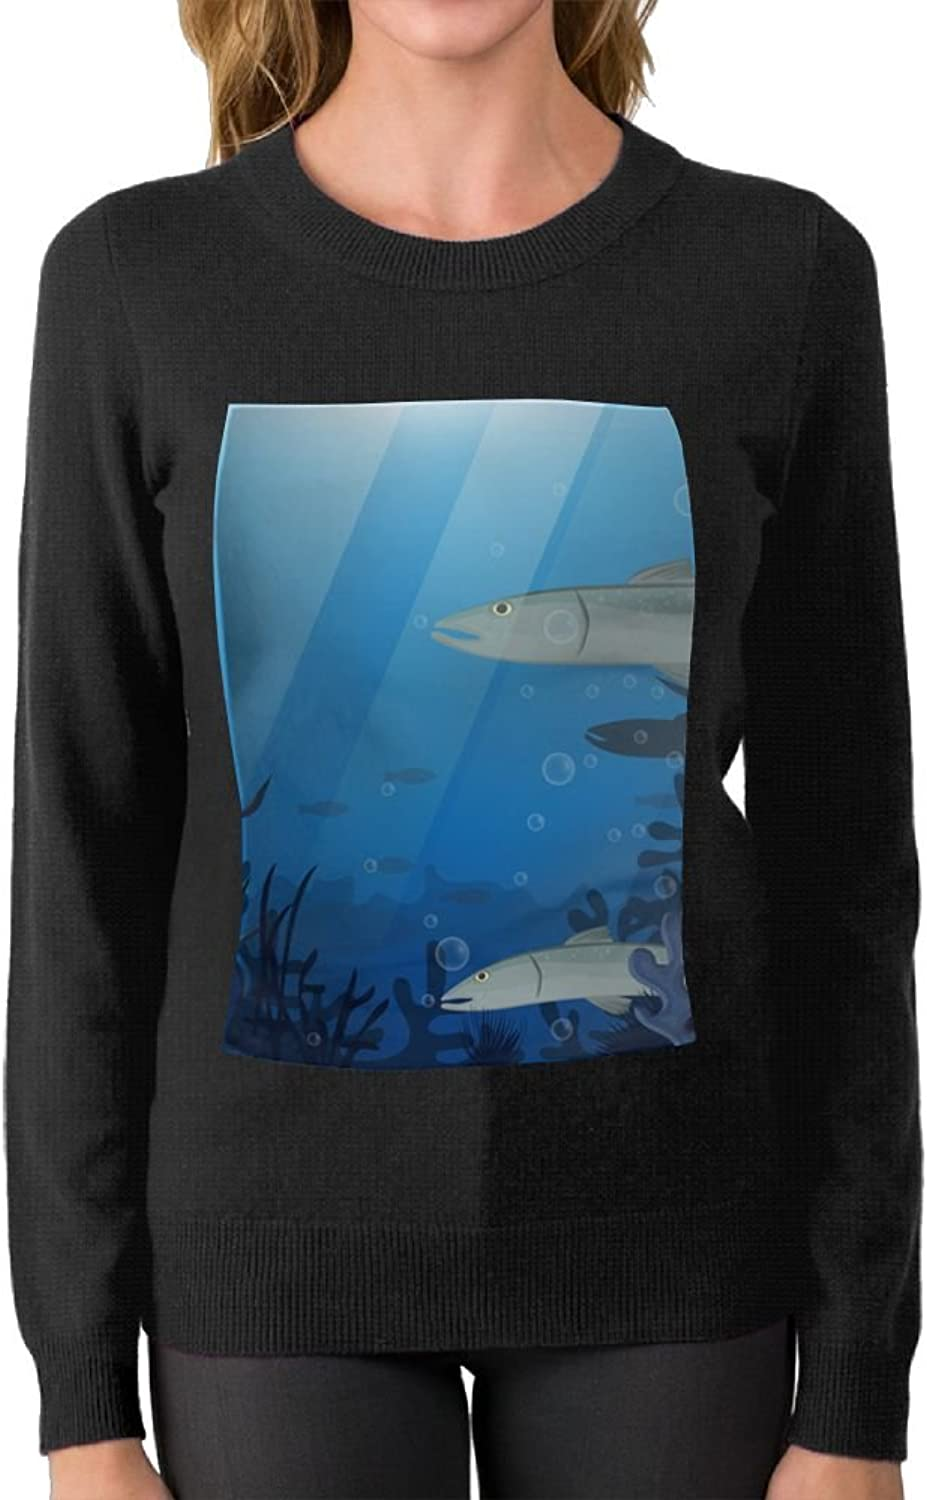 Attractive Women Barracuda Fish Together In Deep Water Cotton Sweater Best Cheap\r\n Warm Crew Neck